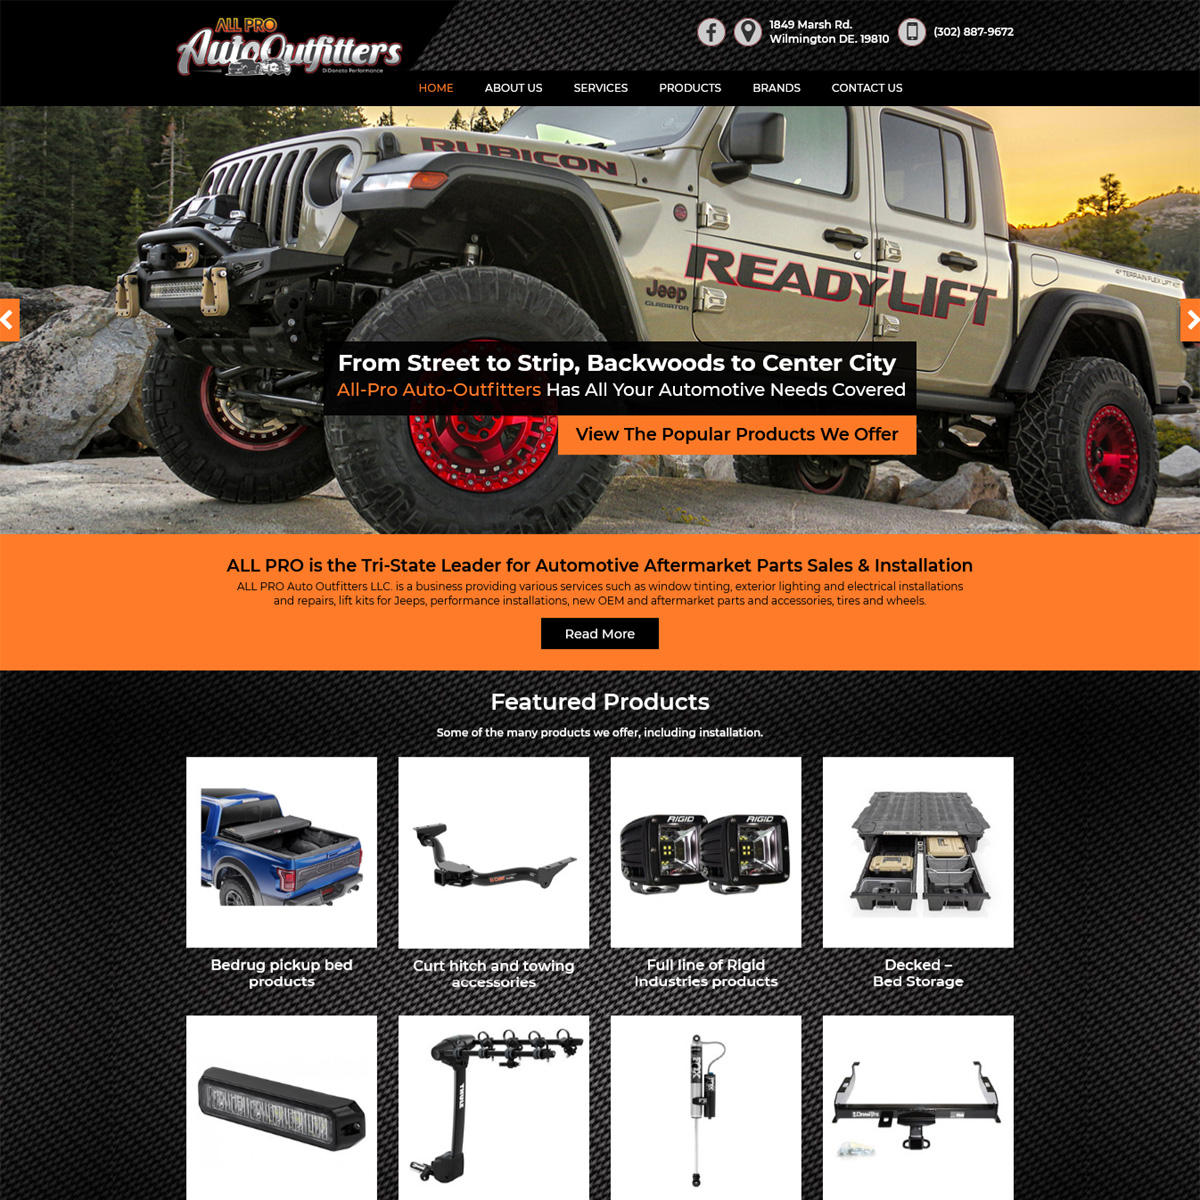 All Pro Auto Outfitters Website Design